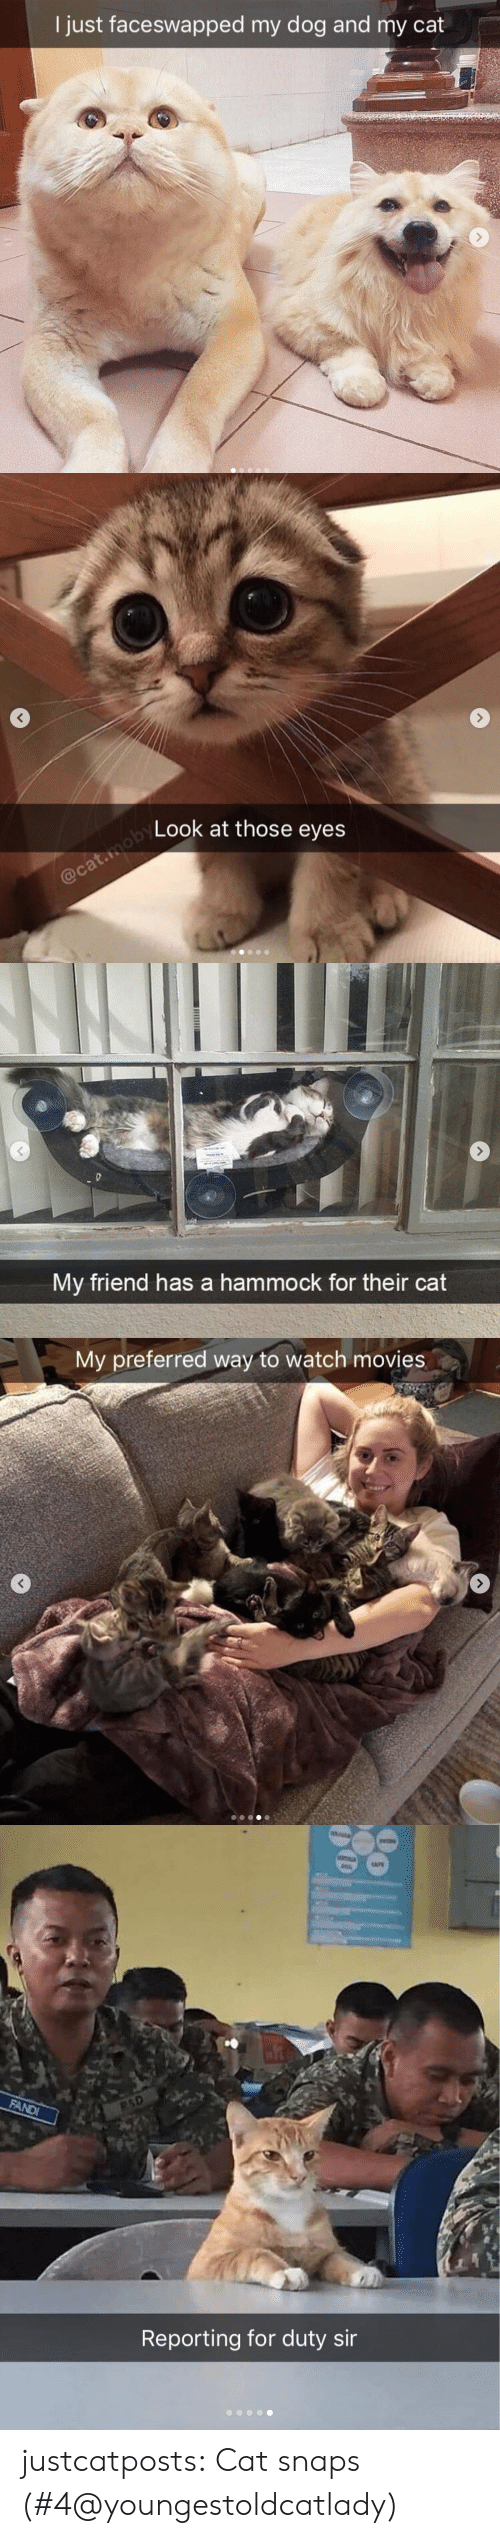 Hammock: I just faceswapped my dog and my cat   Look at those eyes   My friend has a hammock for their cat   My preferred way to watch movies   Reporting for duty sir justcatposts: Cat snaps  (#4@youngestoldcatlady)